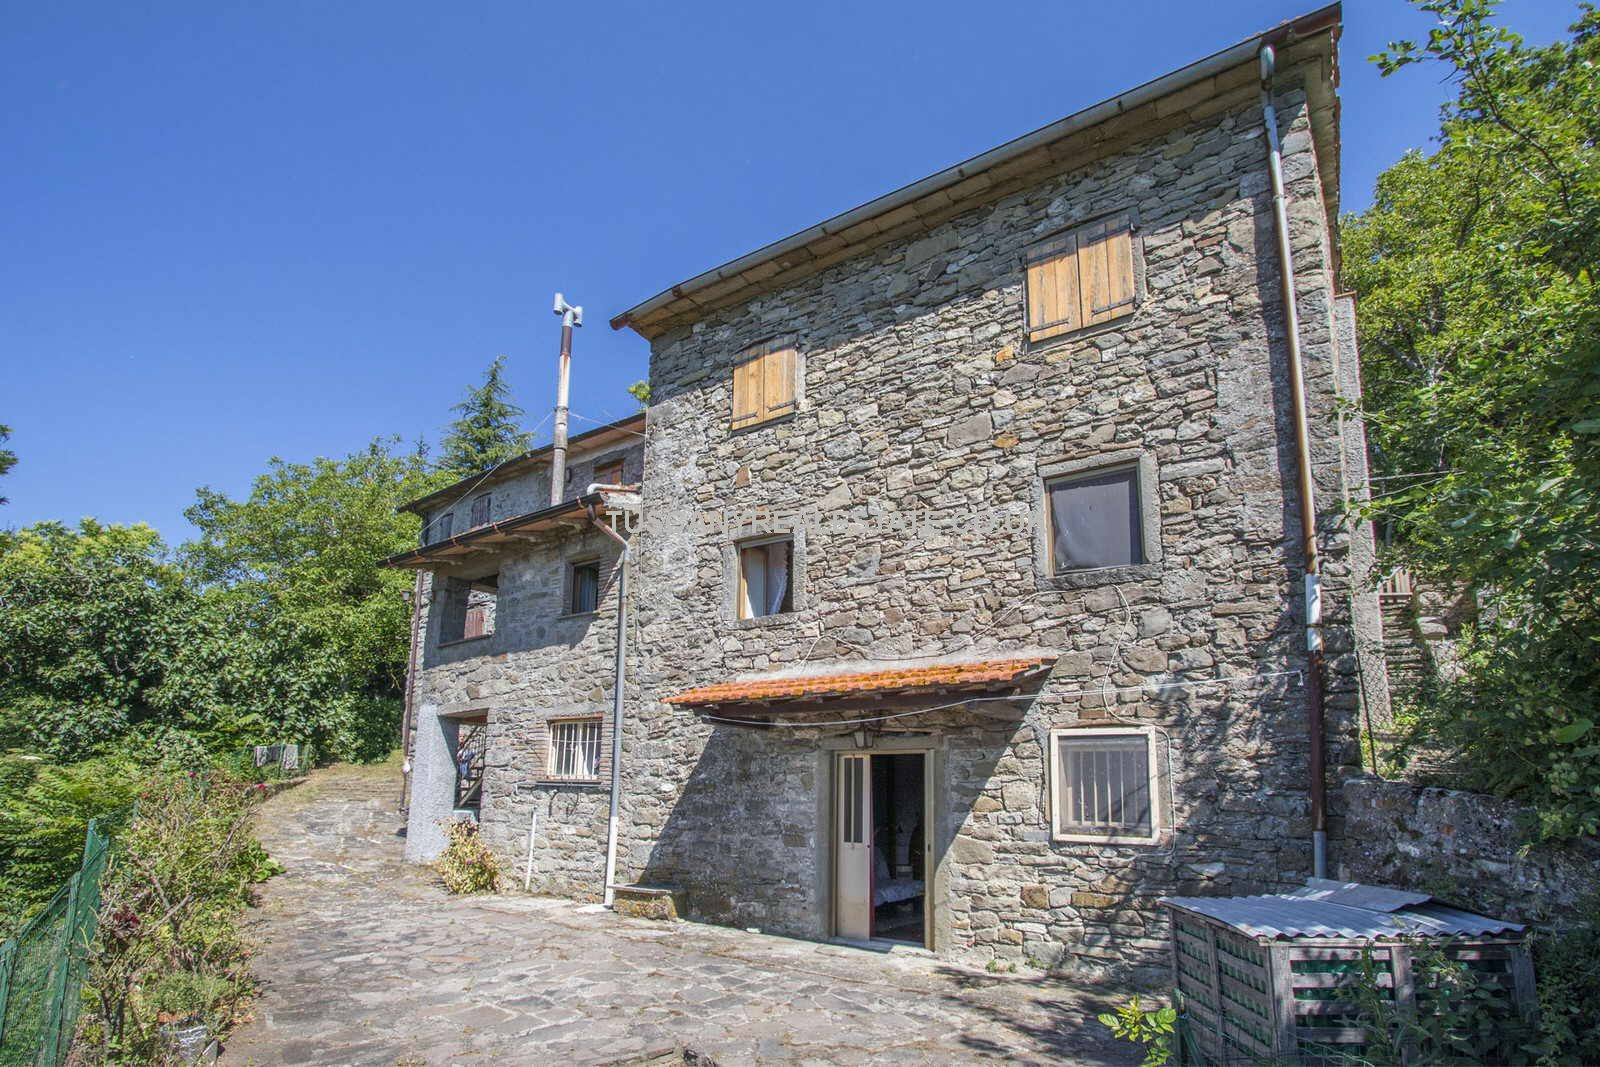 Cheap property for sale in Italy